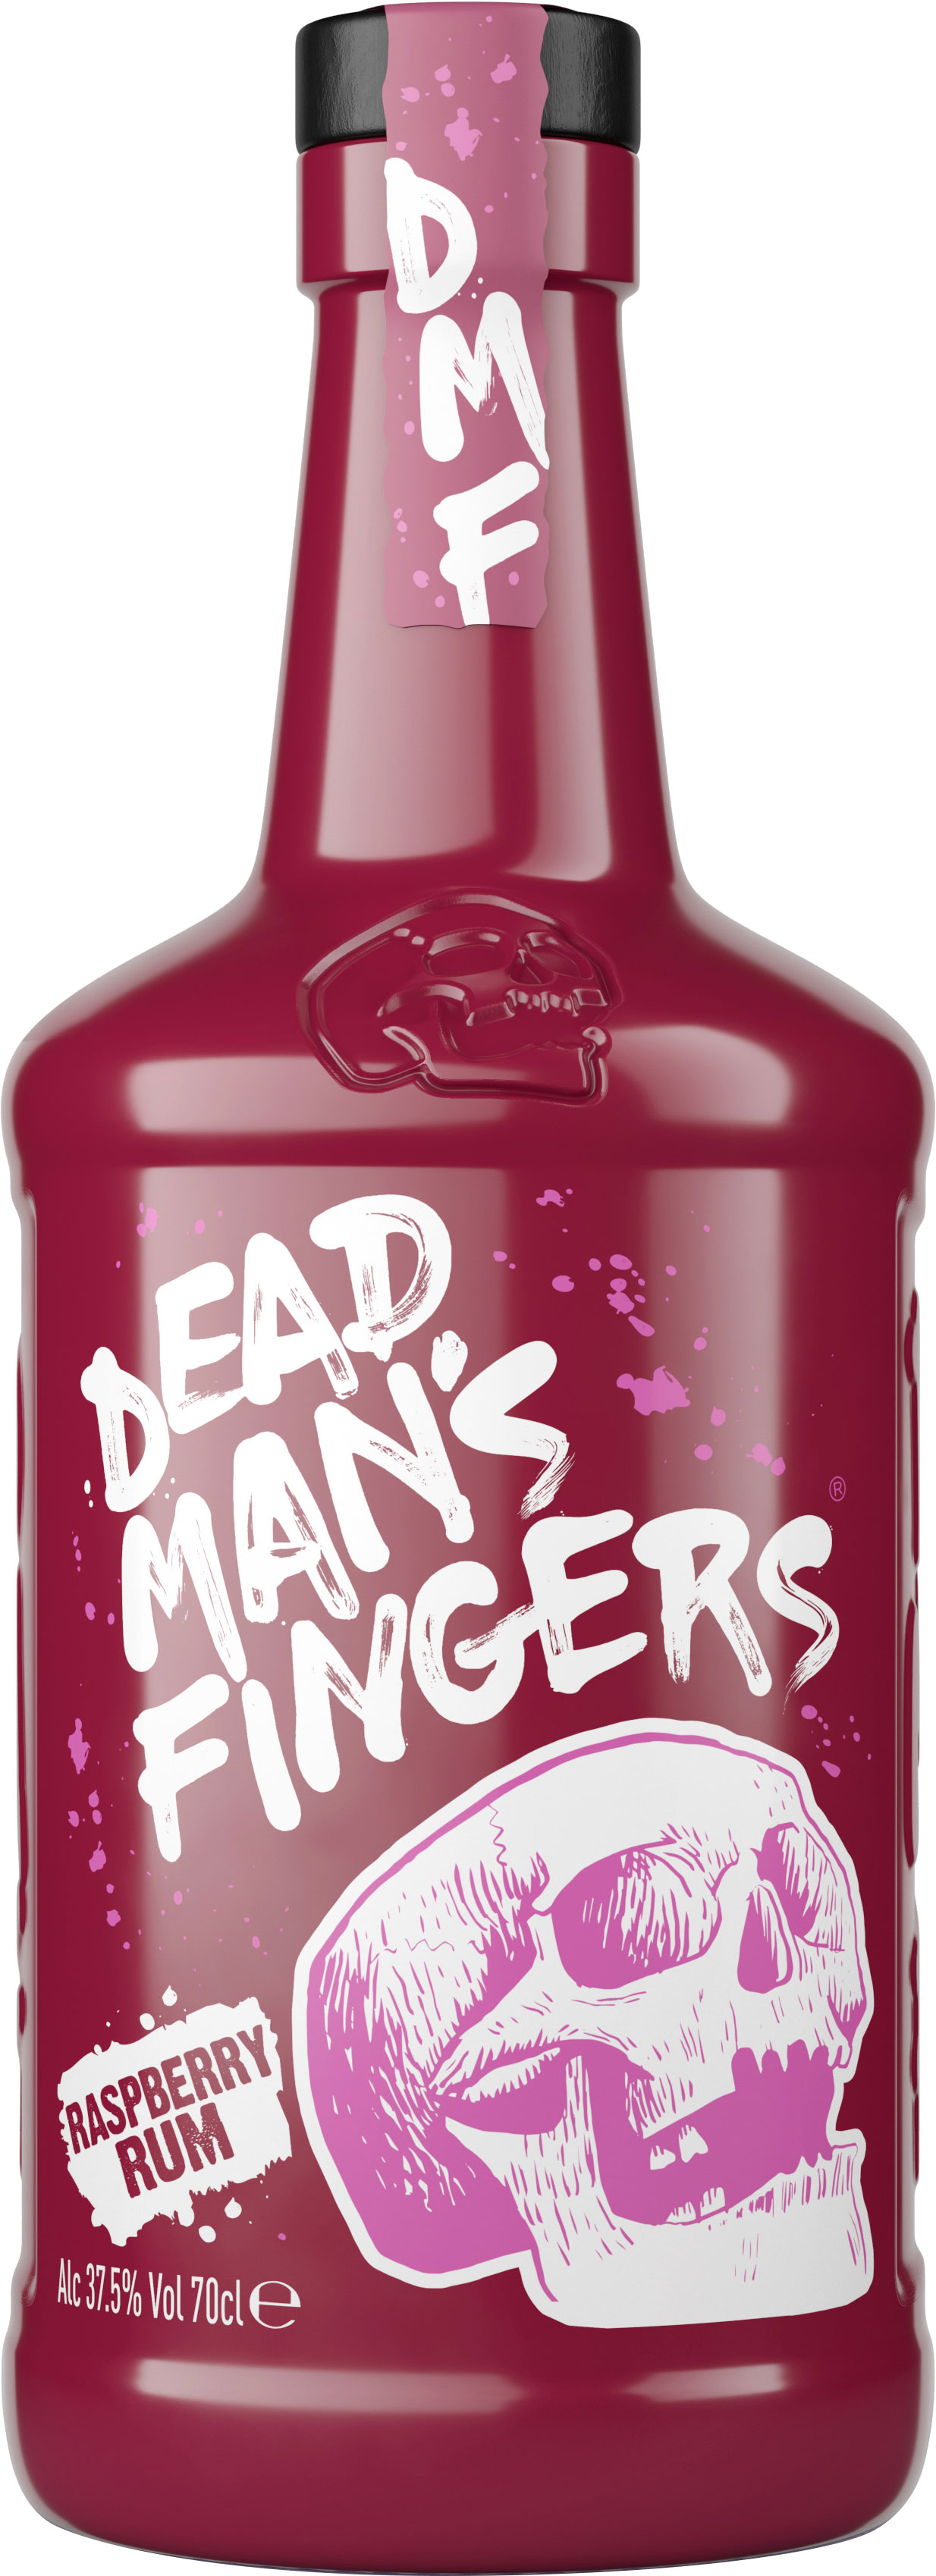 Dead Mans Fingers - Raspberry Rum 70cl Bottle